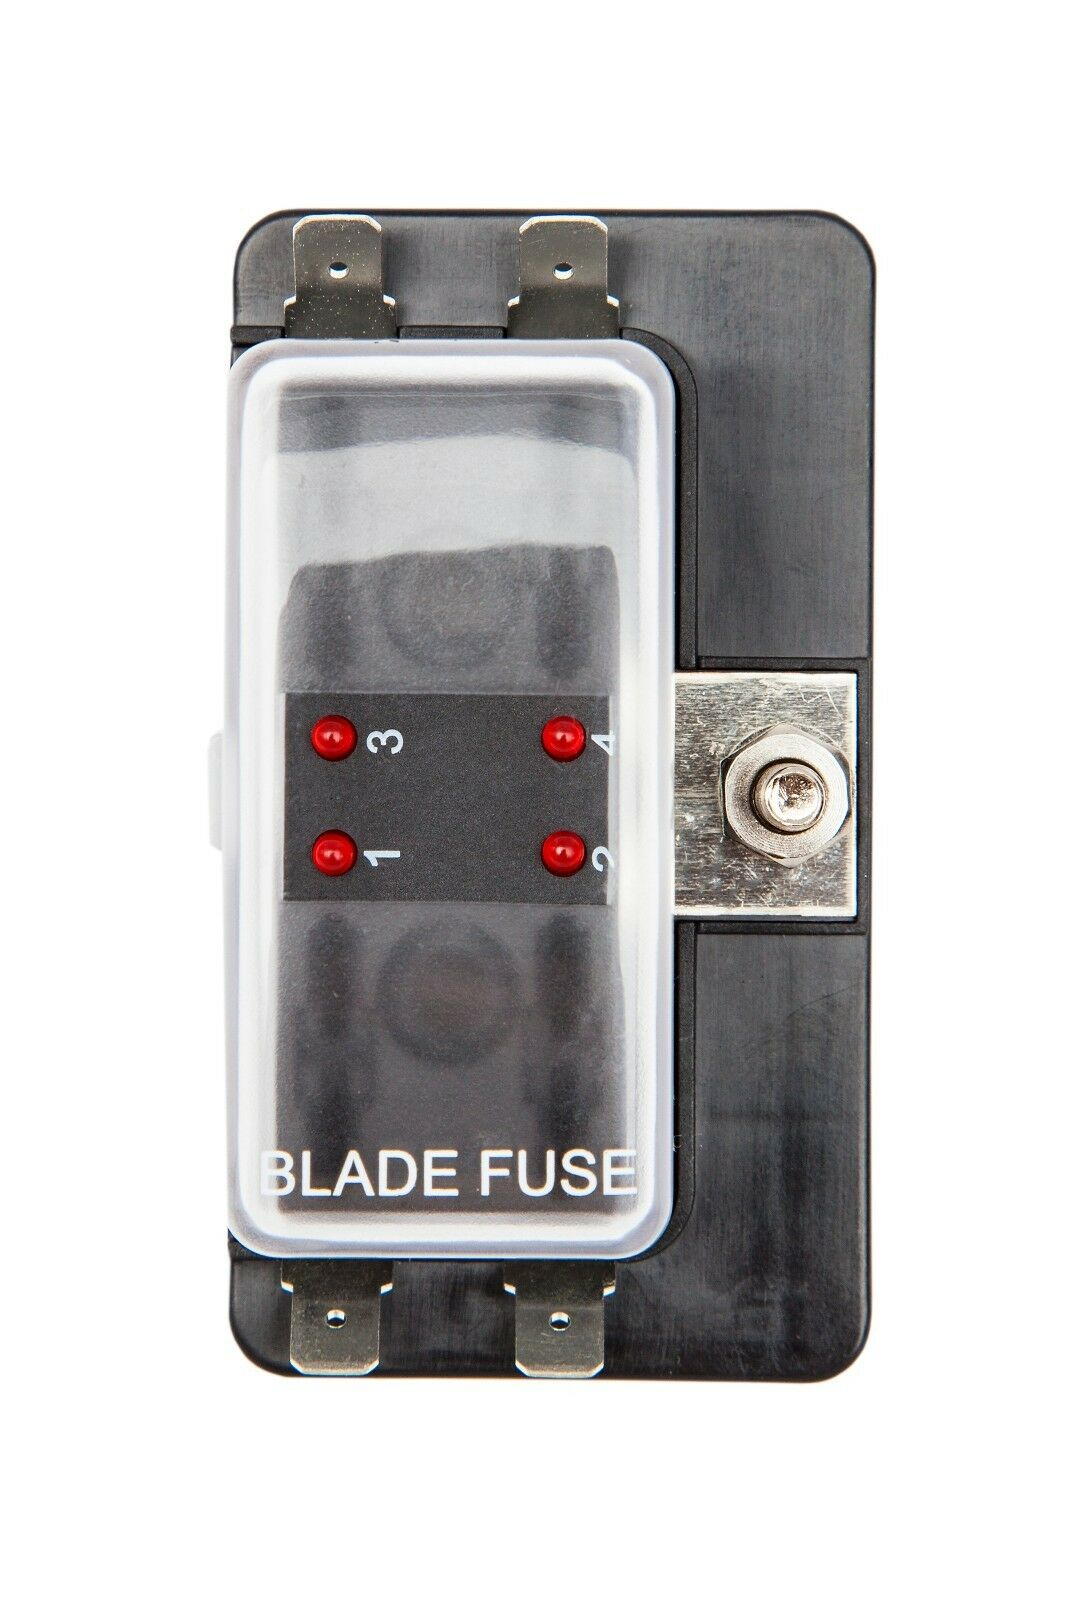 4 Way Led Blade Fuse Box Single Power In Holder Boat Marine 1 Of 1free Shipping